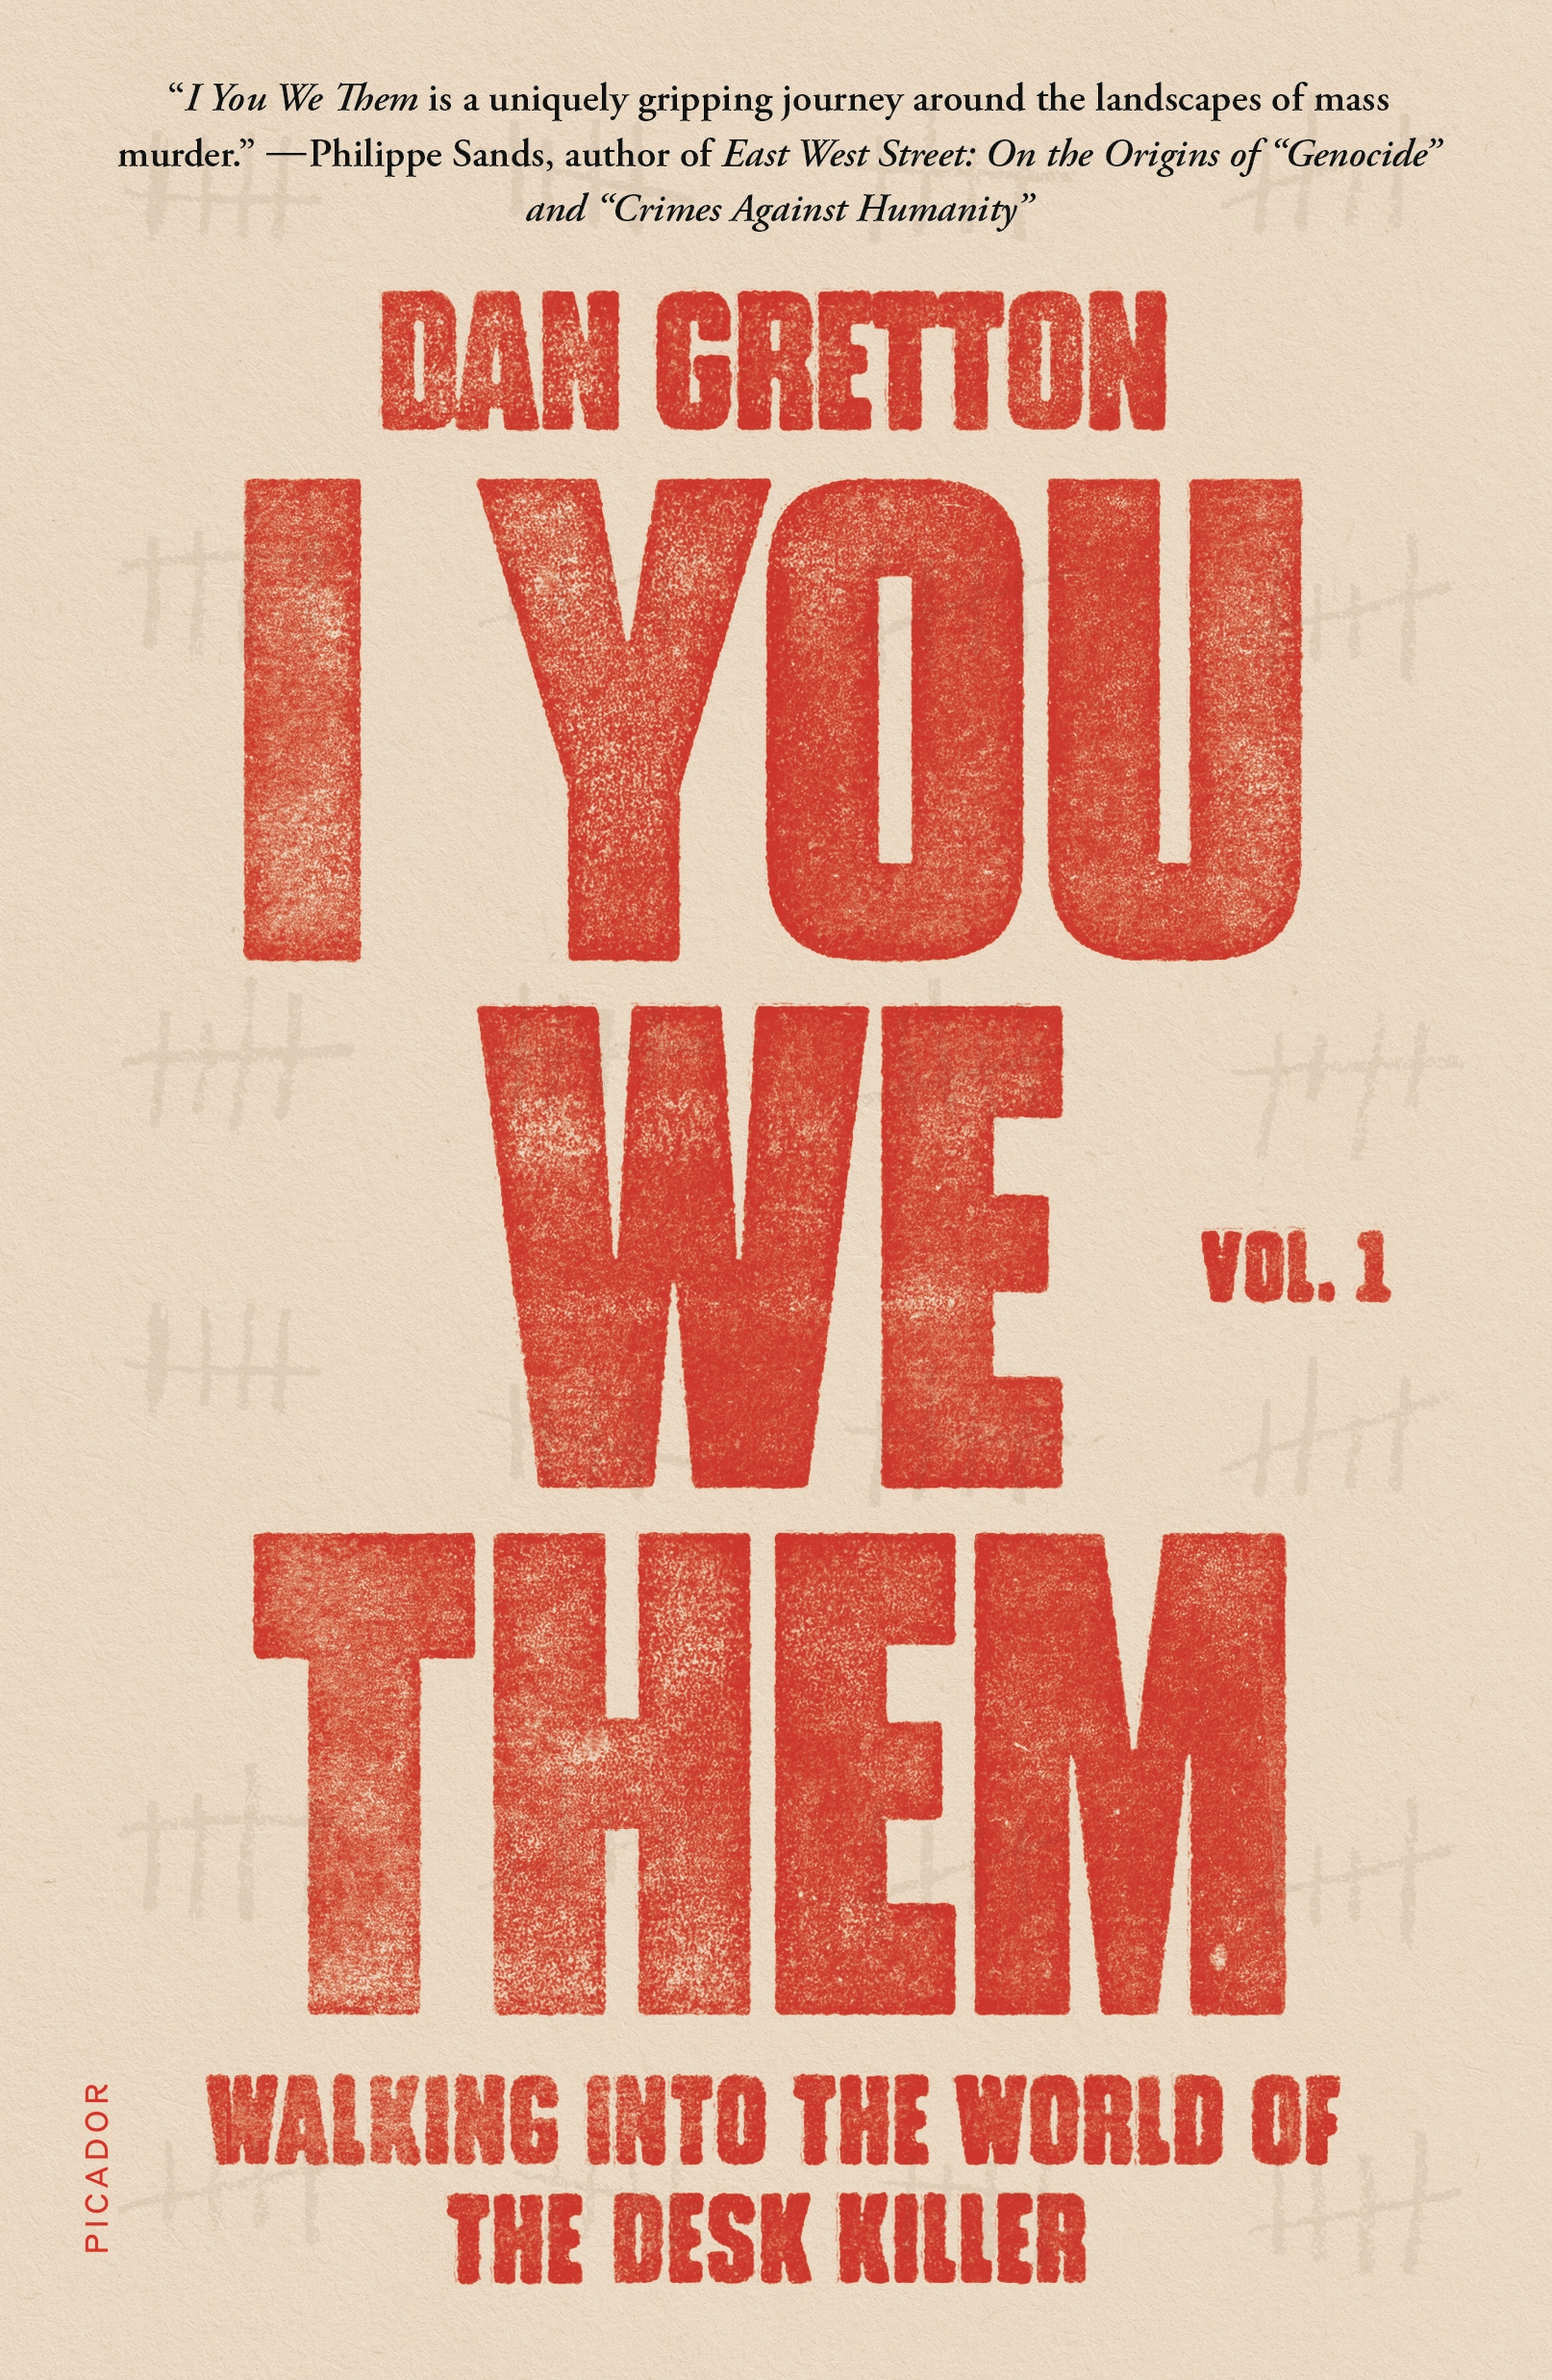 I You We Them: Volume 1